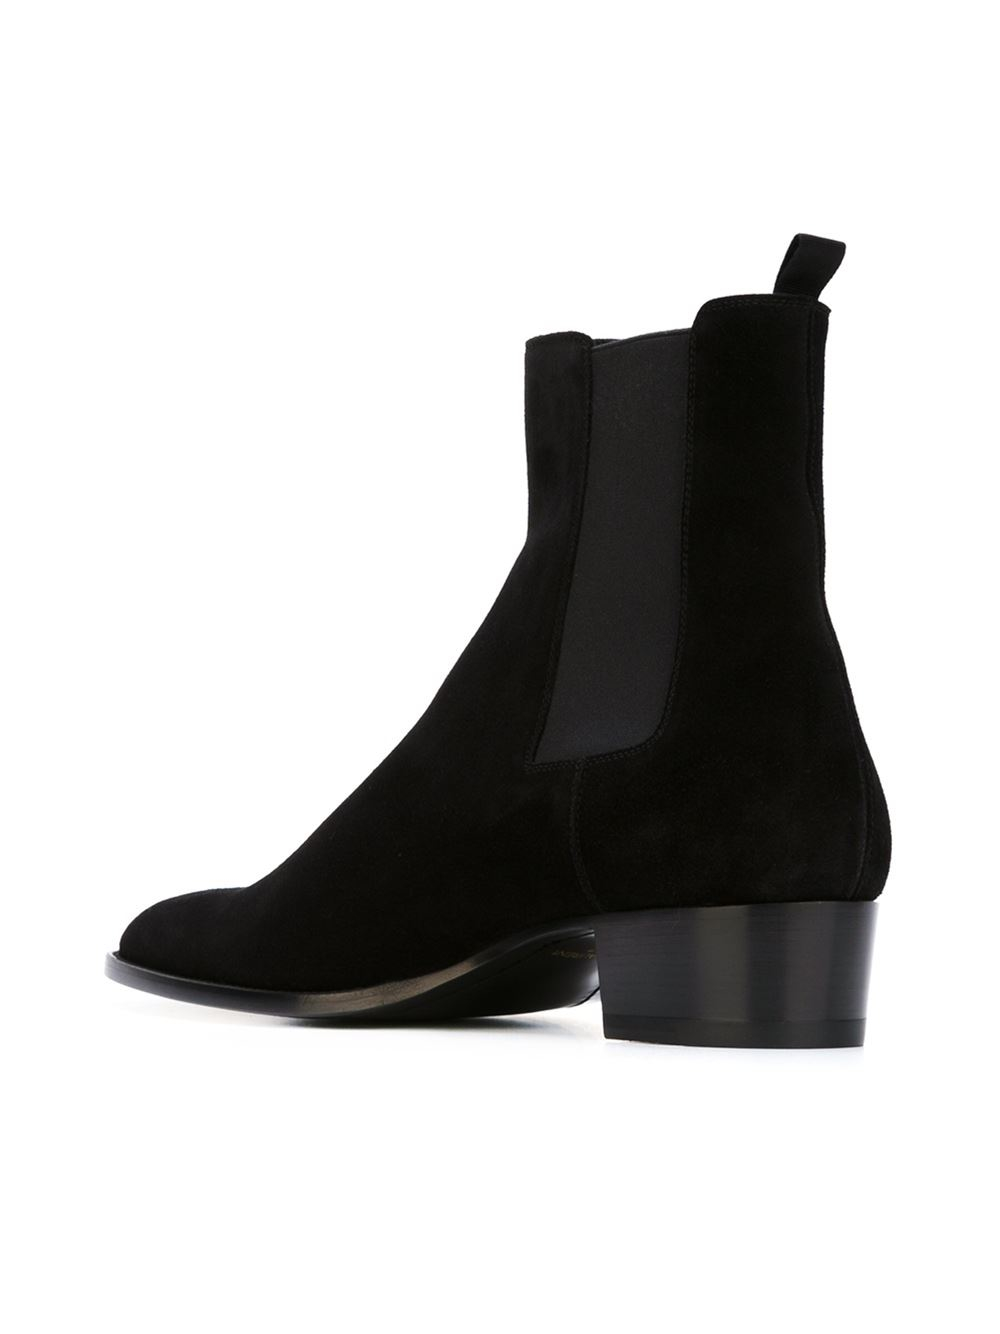 saint laurent classic chelsea boots in black for men lyst. Black Bedroom Furniture Sets. Home Design Ideas